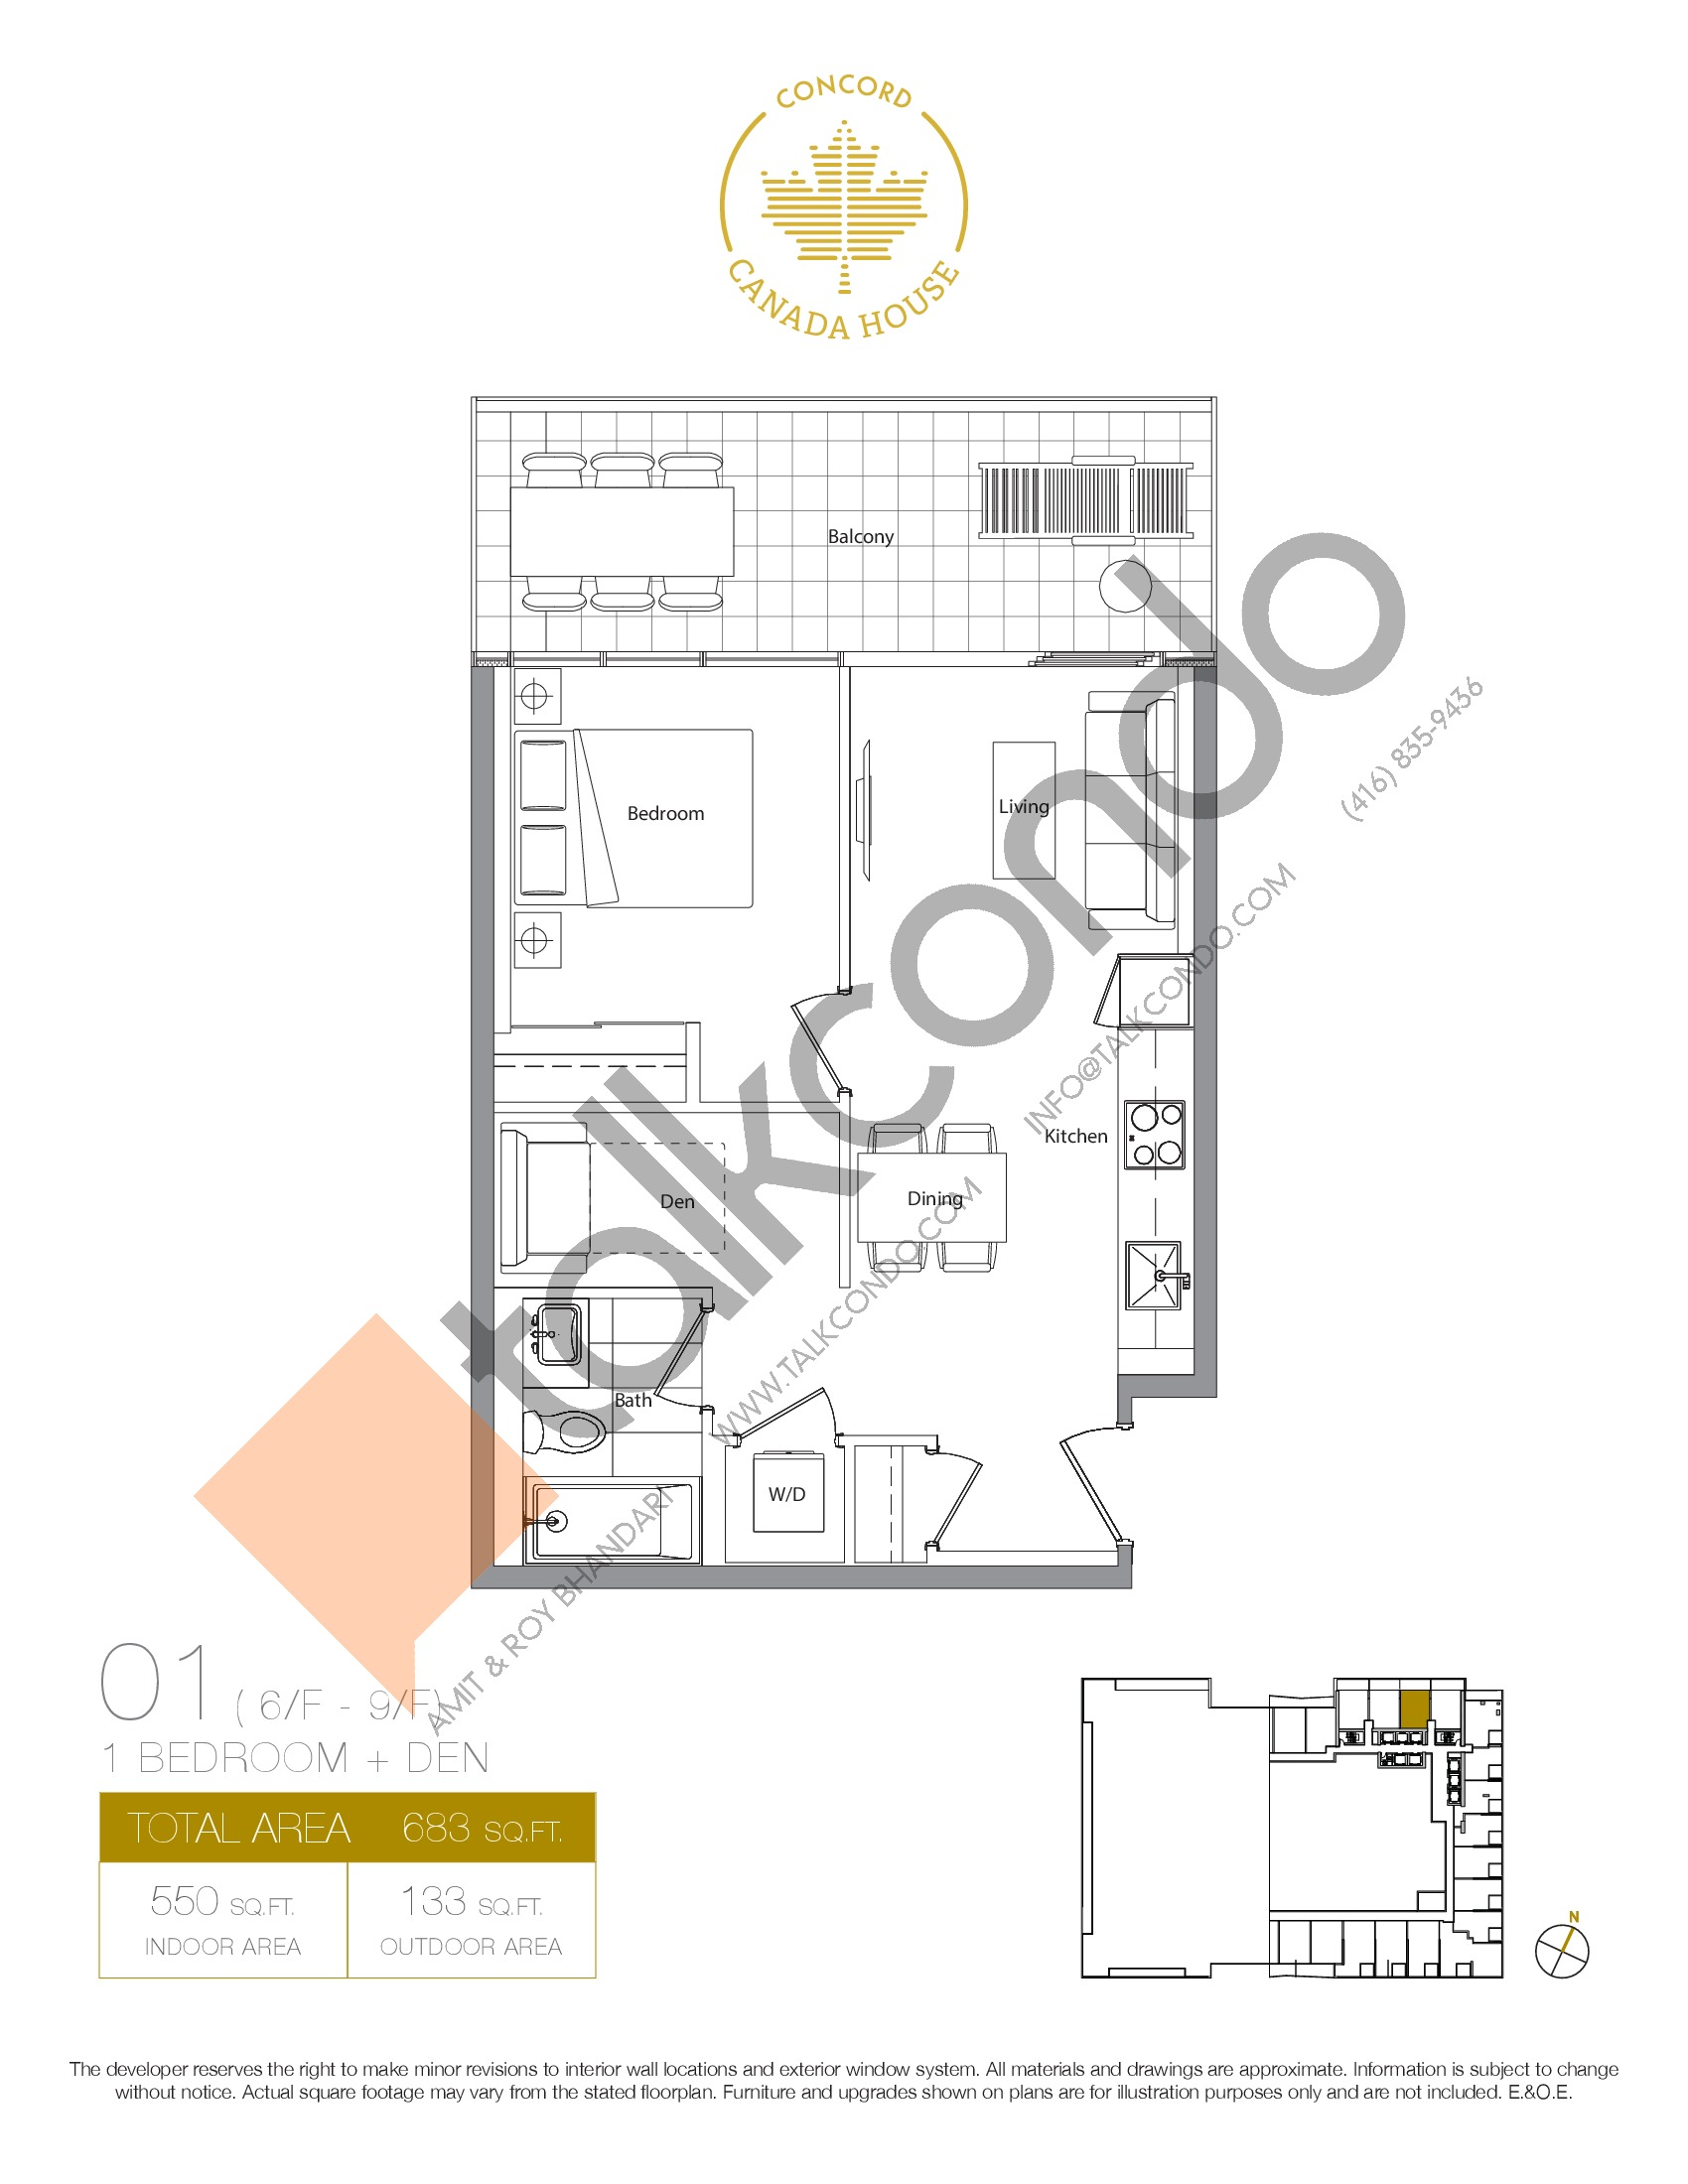 01 - West Tower Floor Plan at Concord Canada House Condos - 550 sq.ft